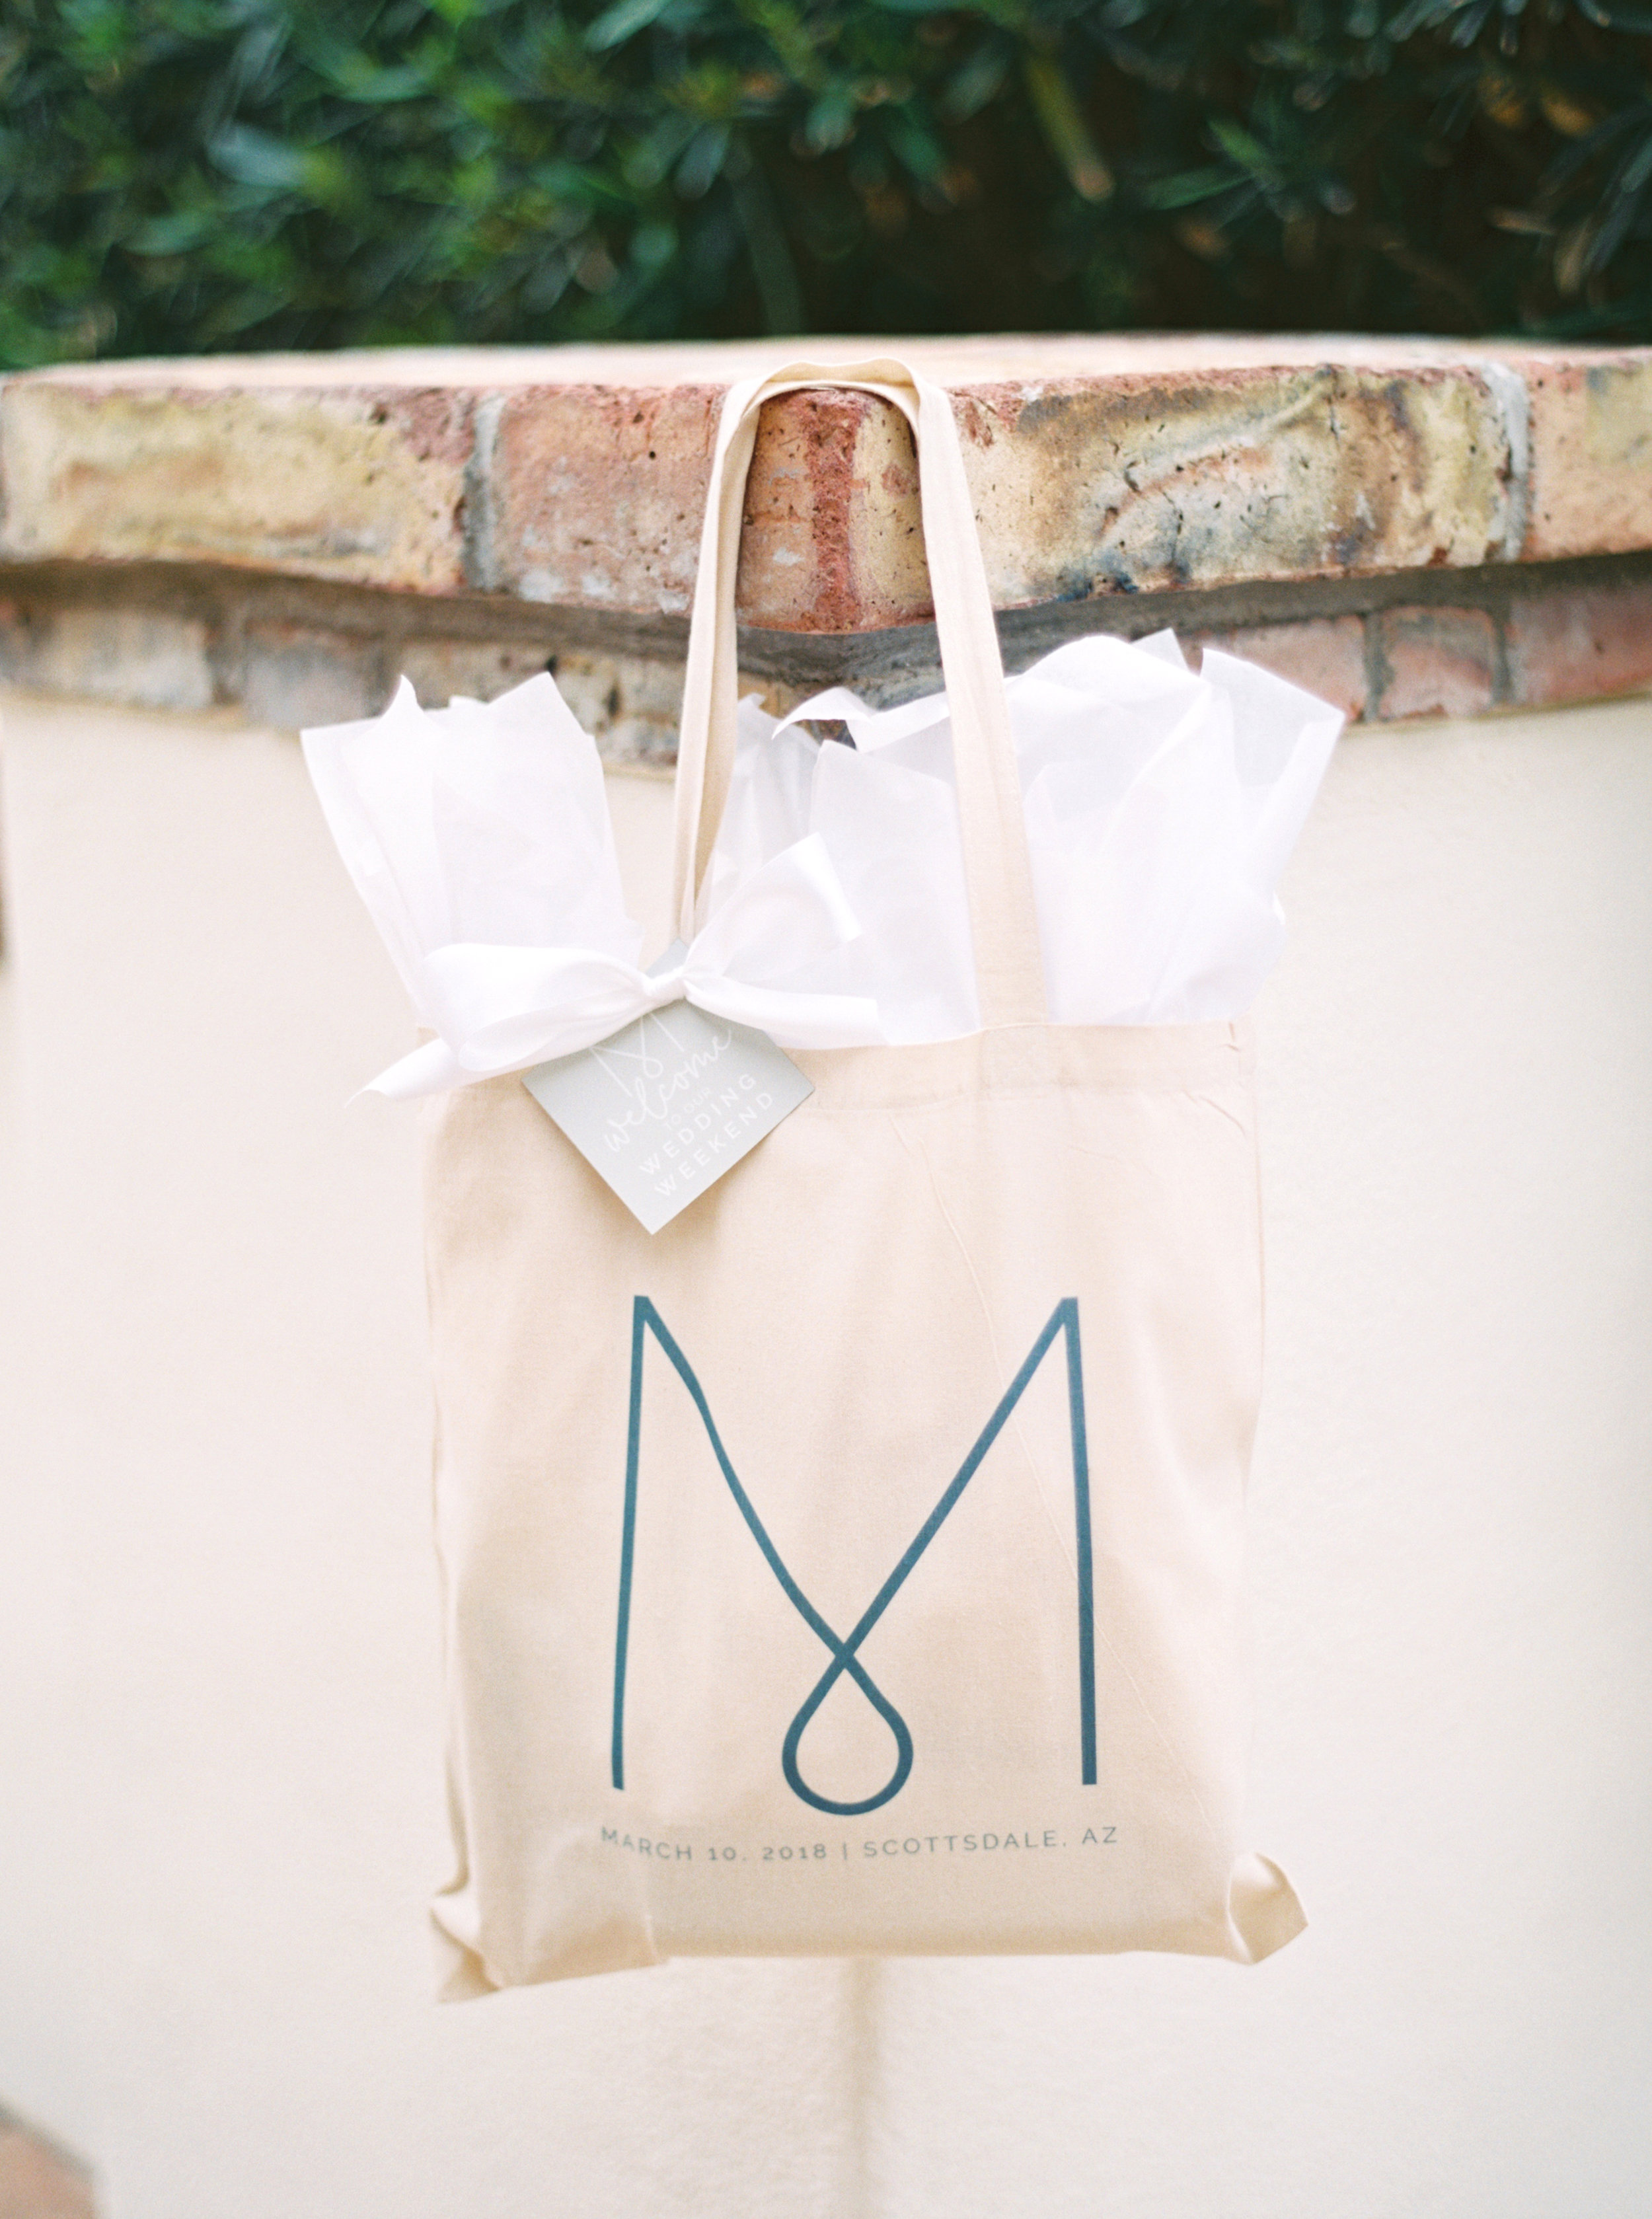 2 hotel gift bag guest welcome gift wedding welcome kit hotel welcome kit out of town wedding guests Life Design Events photos by Melissa Jill Photography.jpg